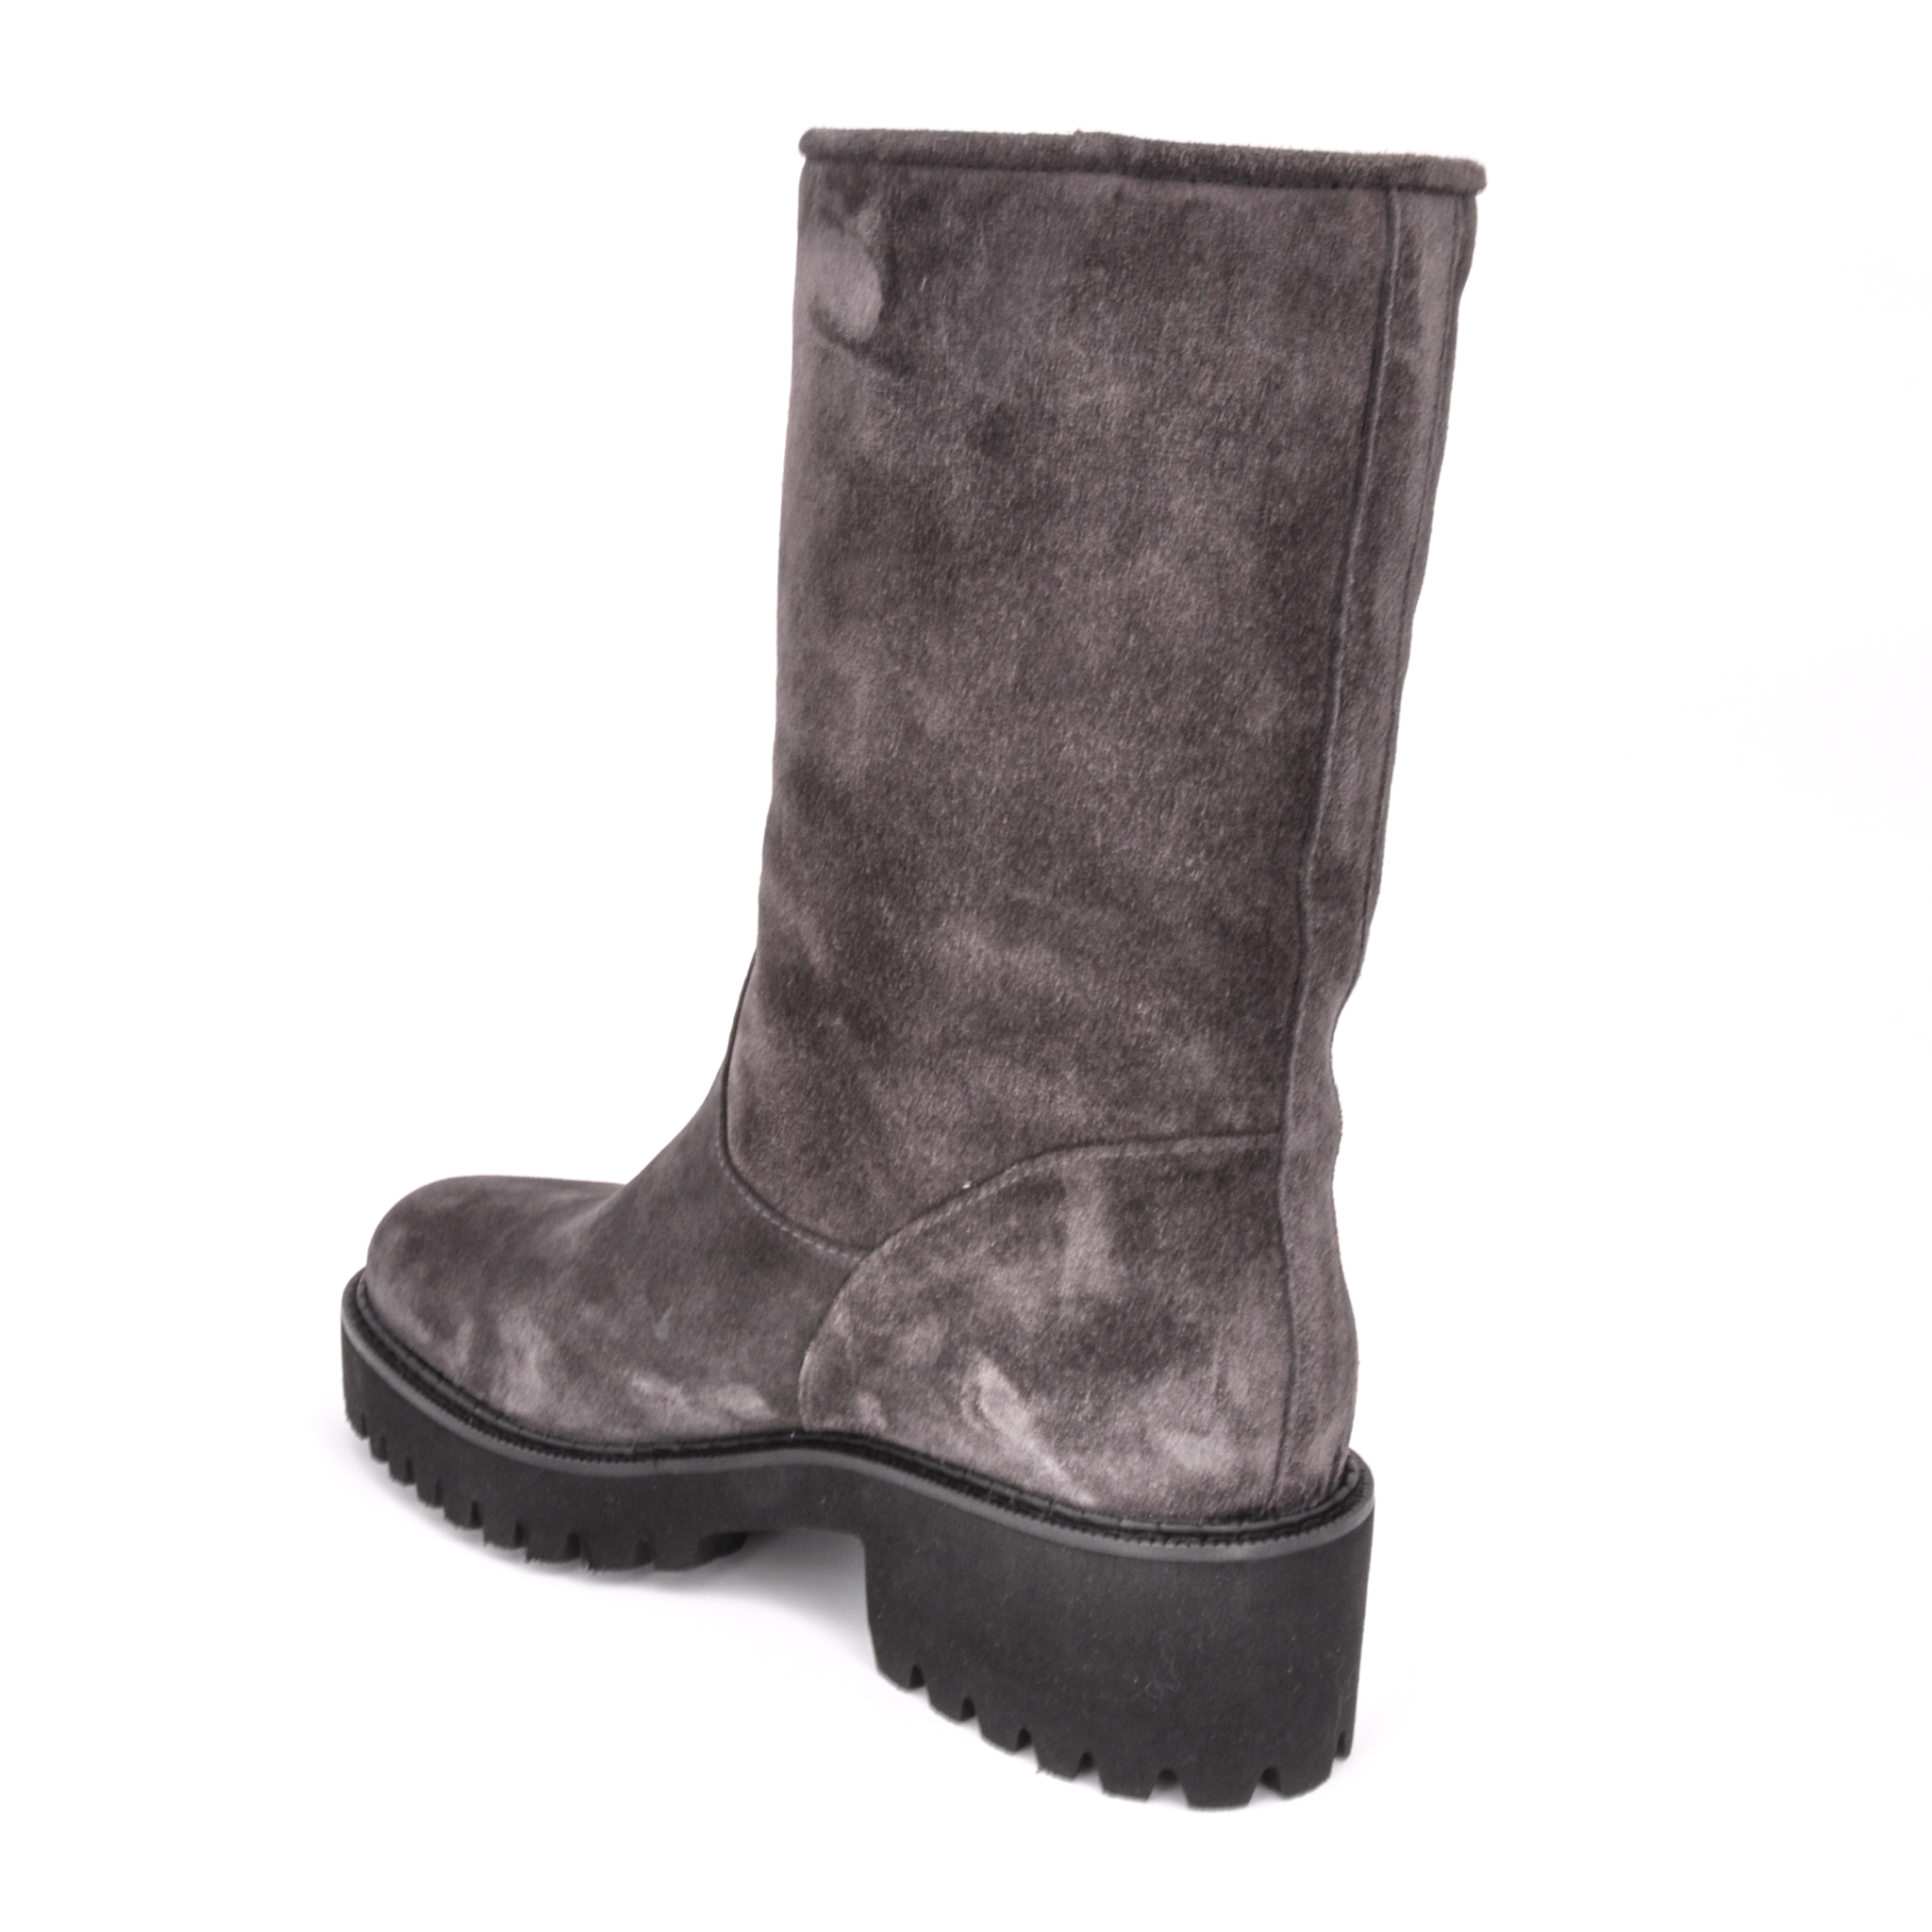 Tiny Shearling Mid Calf Boot | Grey Suede